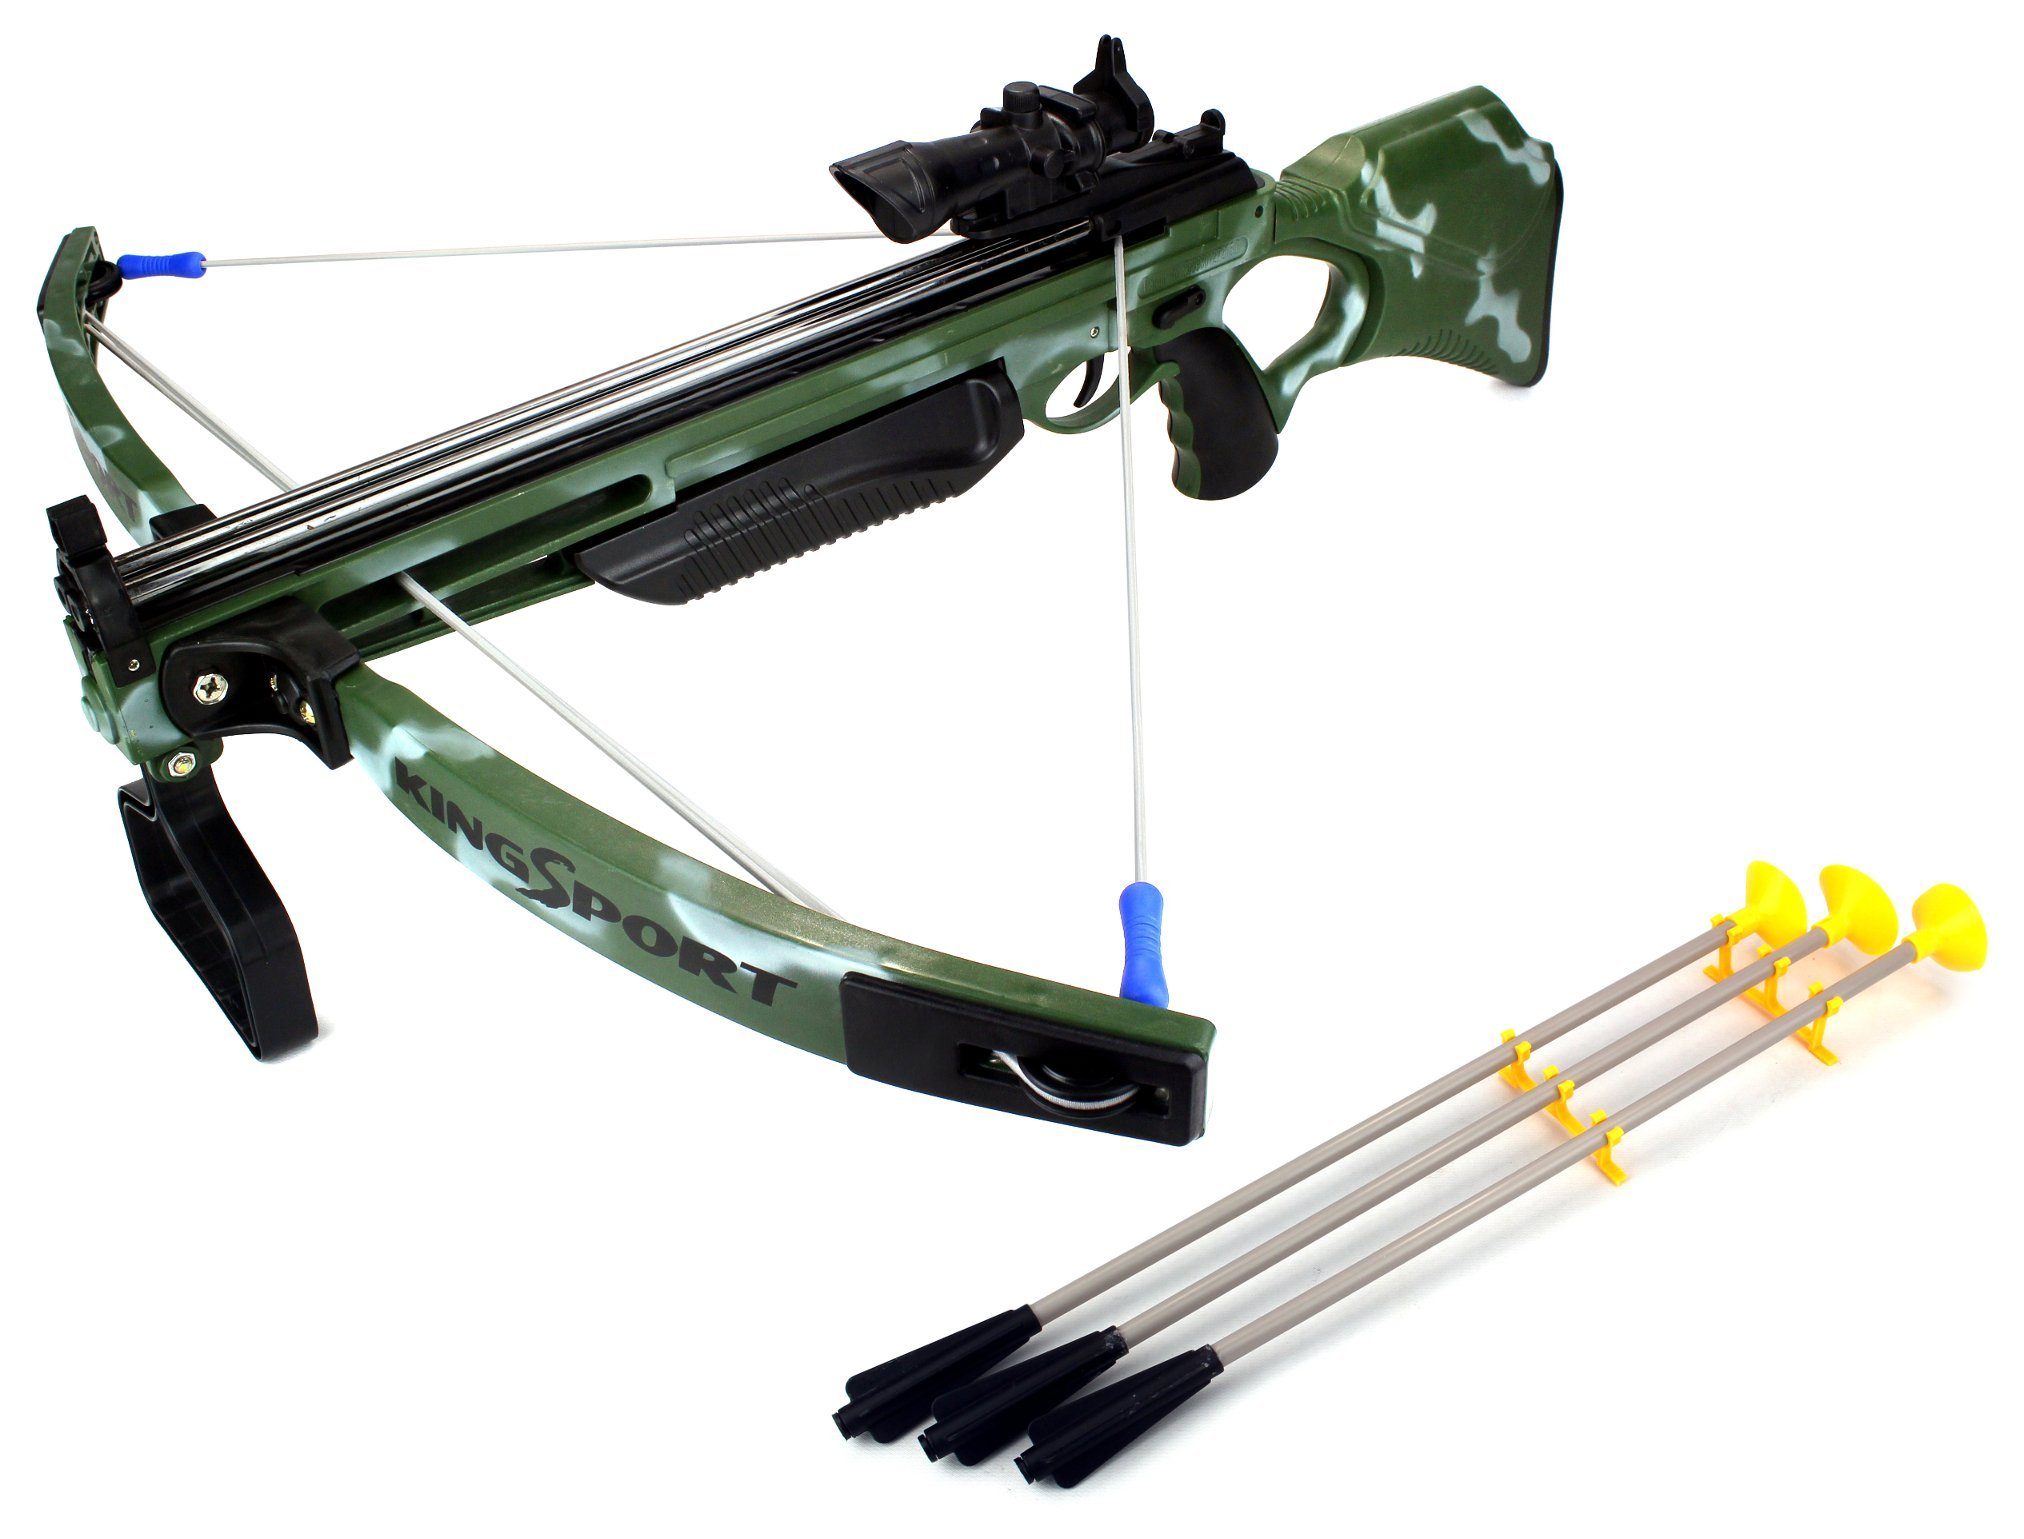 Toy Crossbow Set Deluxe Action Military Toy Crossbow Suction Dart Playset w/ Foot Stirrup, 3 Suction Darts, Holder, Mock Scope by Velocity Toys